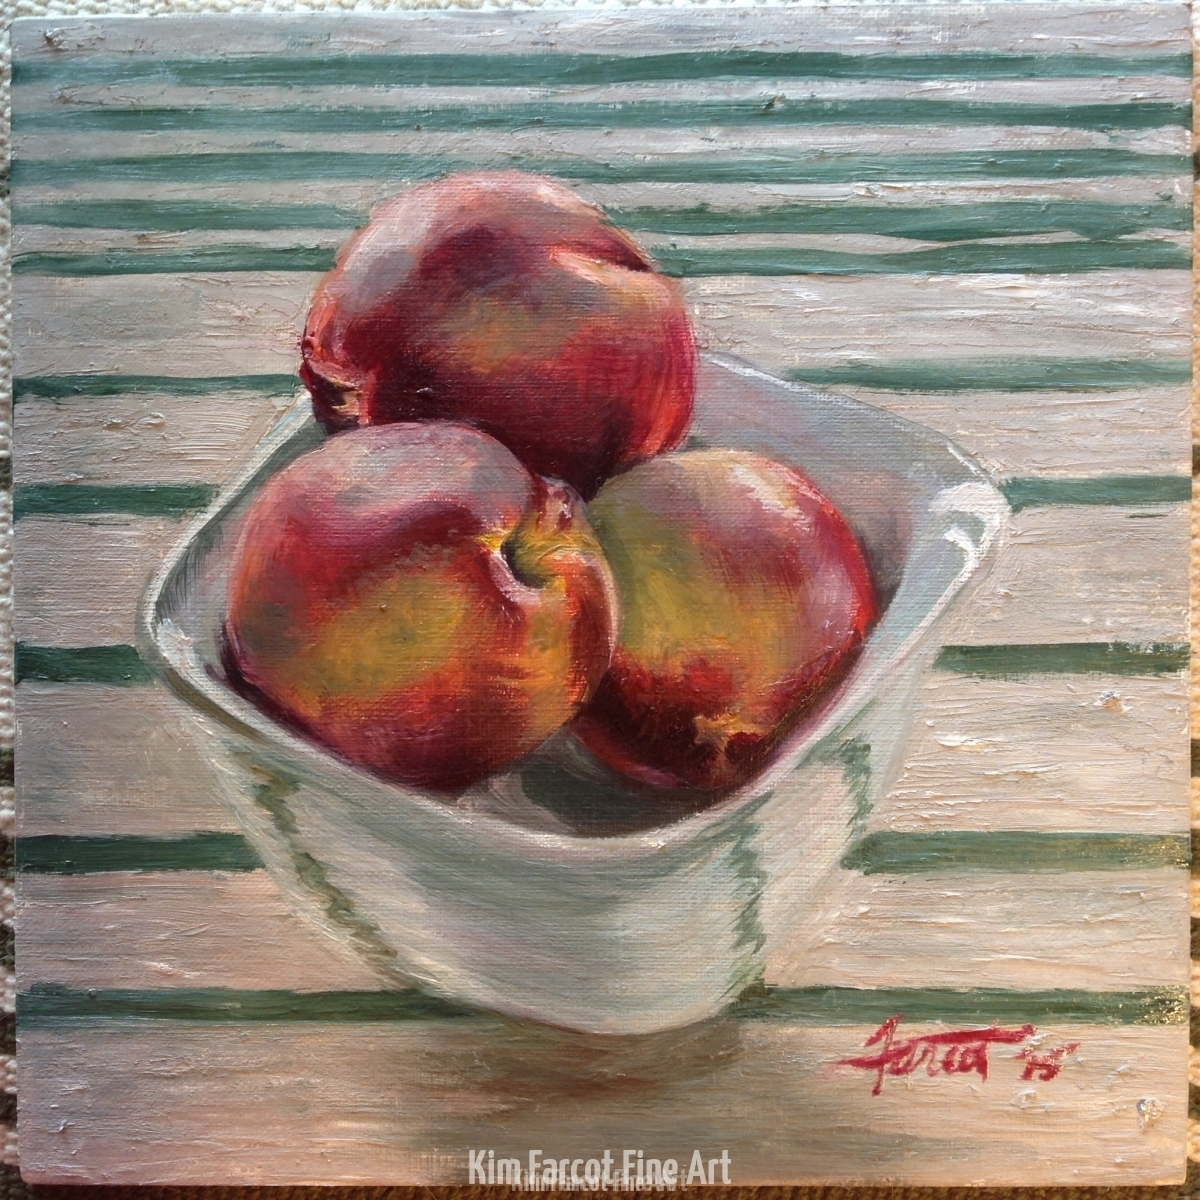 Peaches, private collection, Saudi Arabia